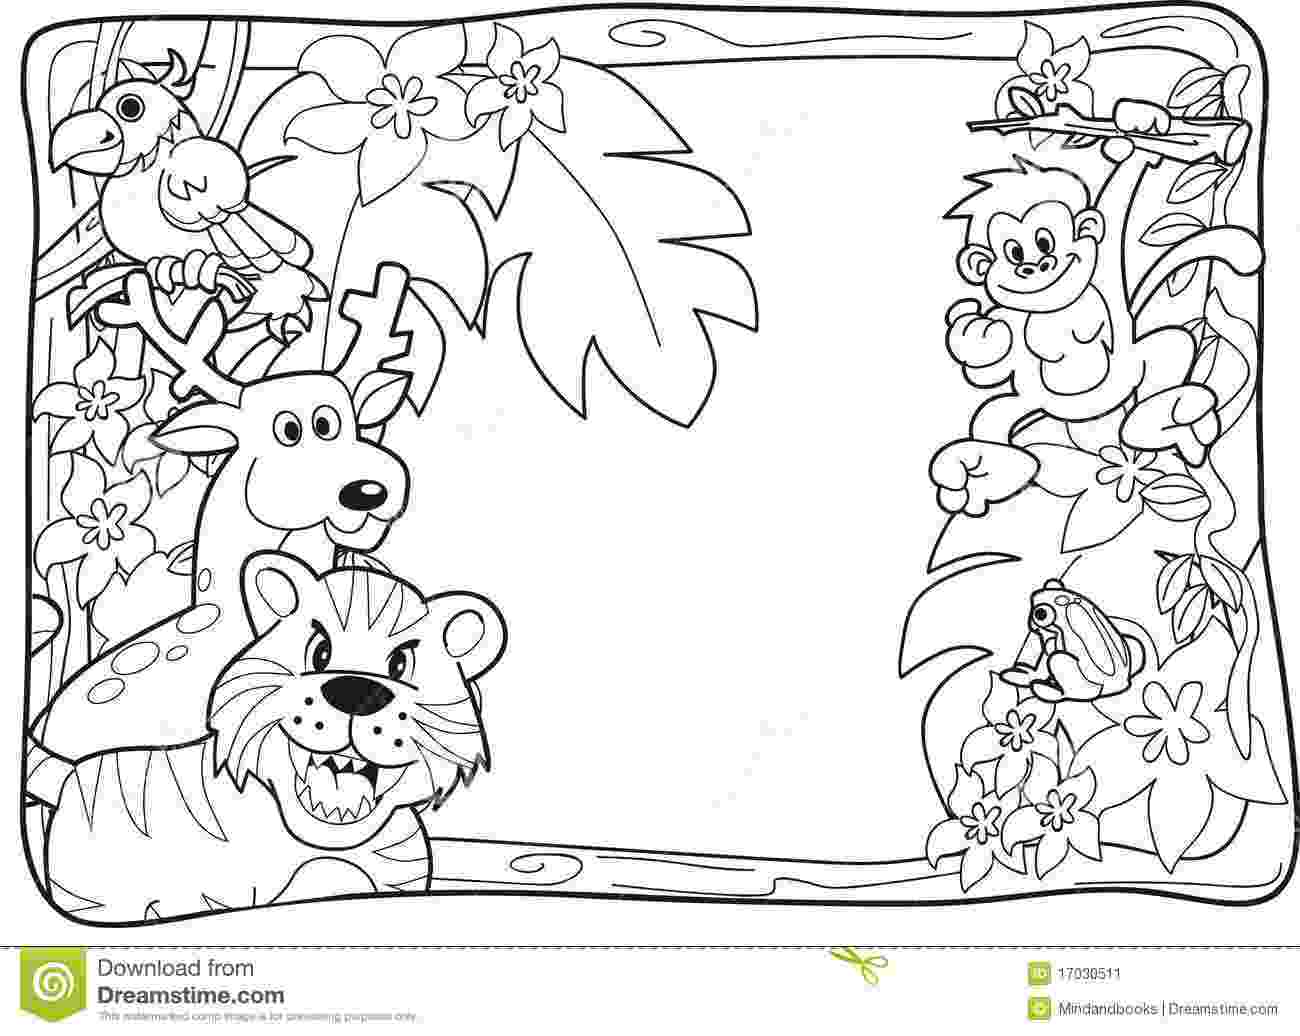 coloring pages jungle jungle animal coloring pages to download and print for free pages coloring jungle